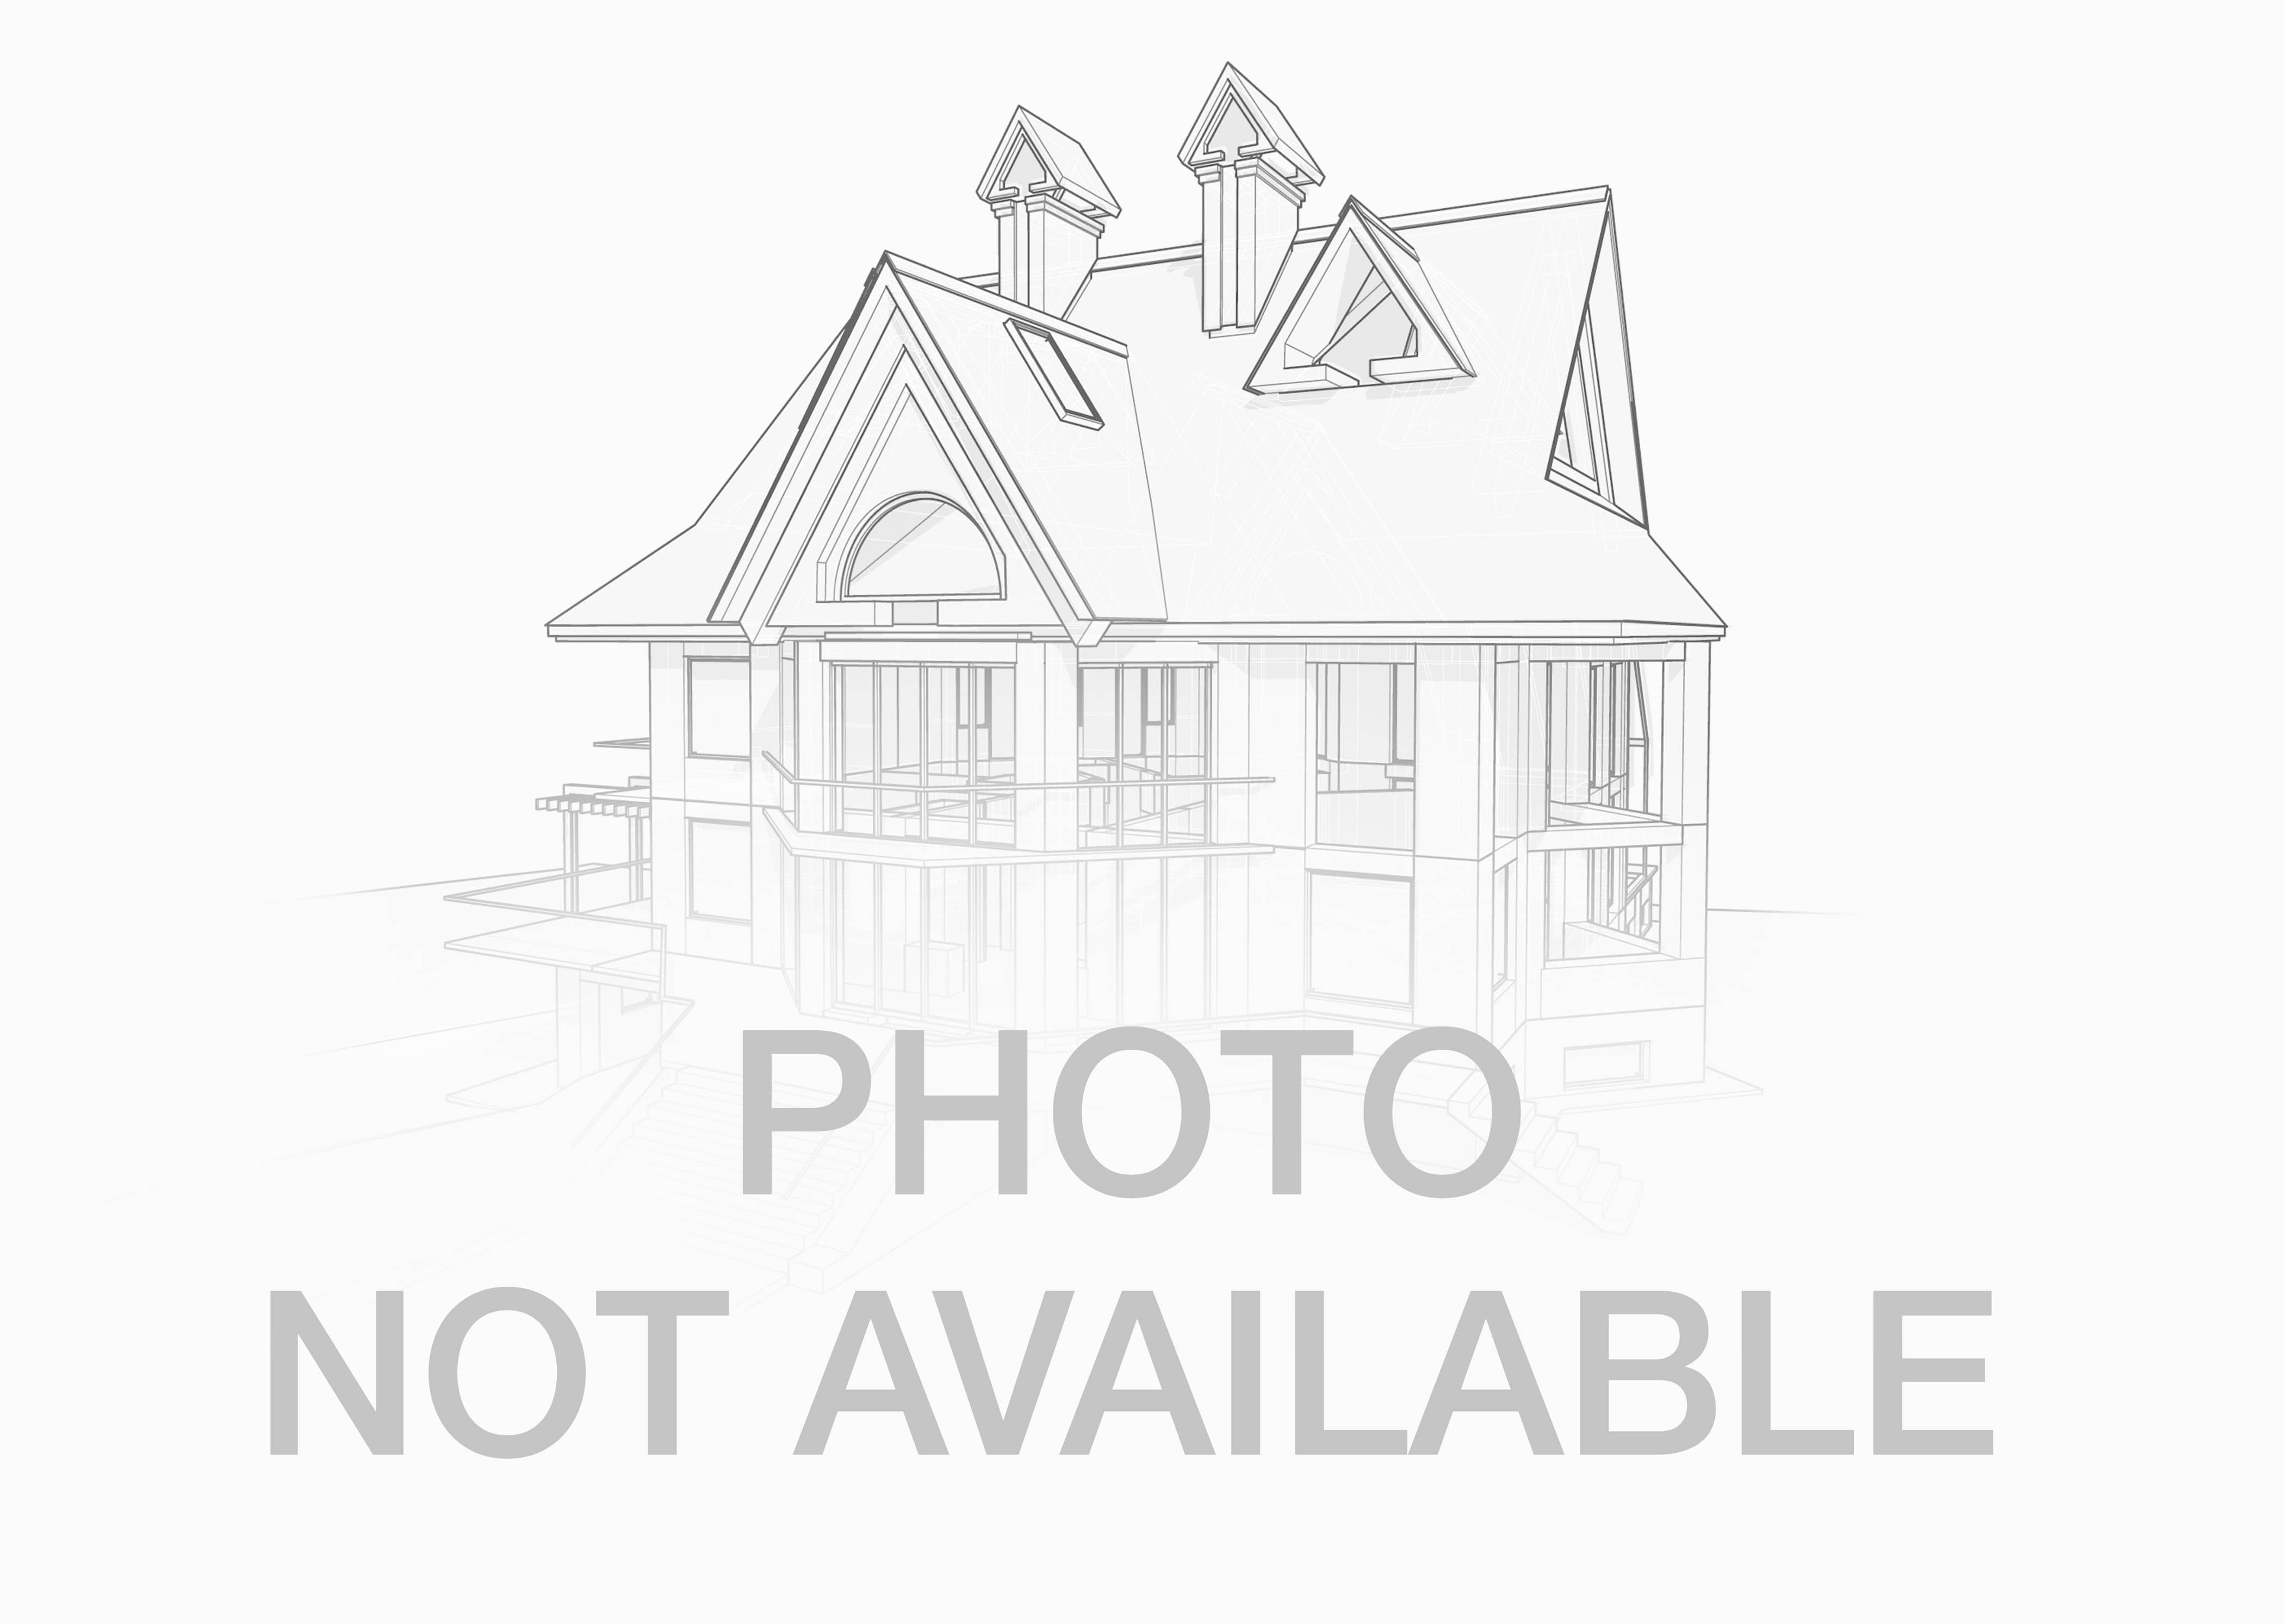 540 Quarry Lakes Dr, Amherst, Oh 44001